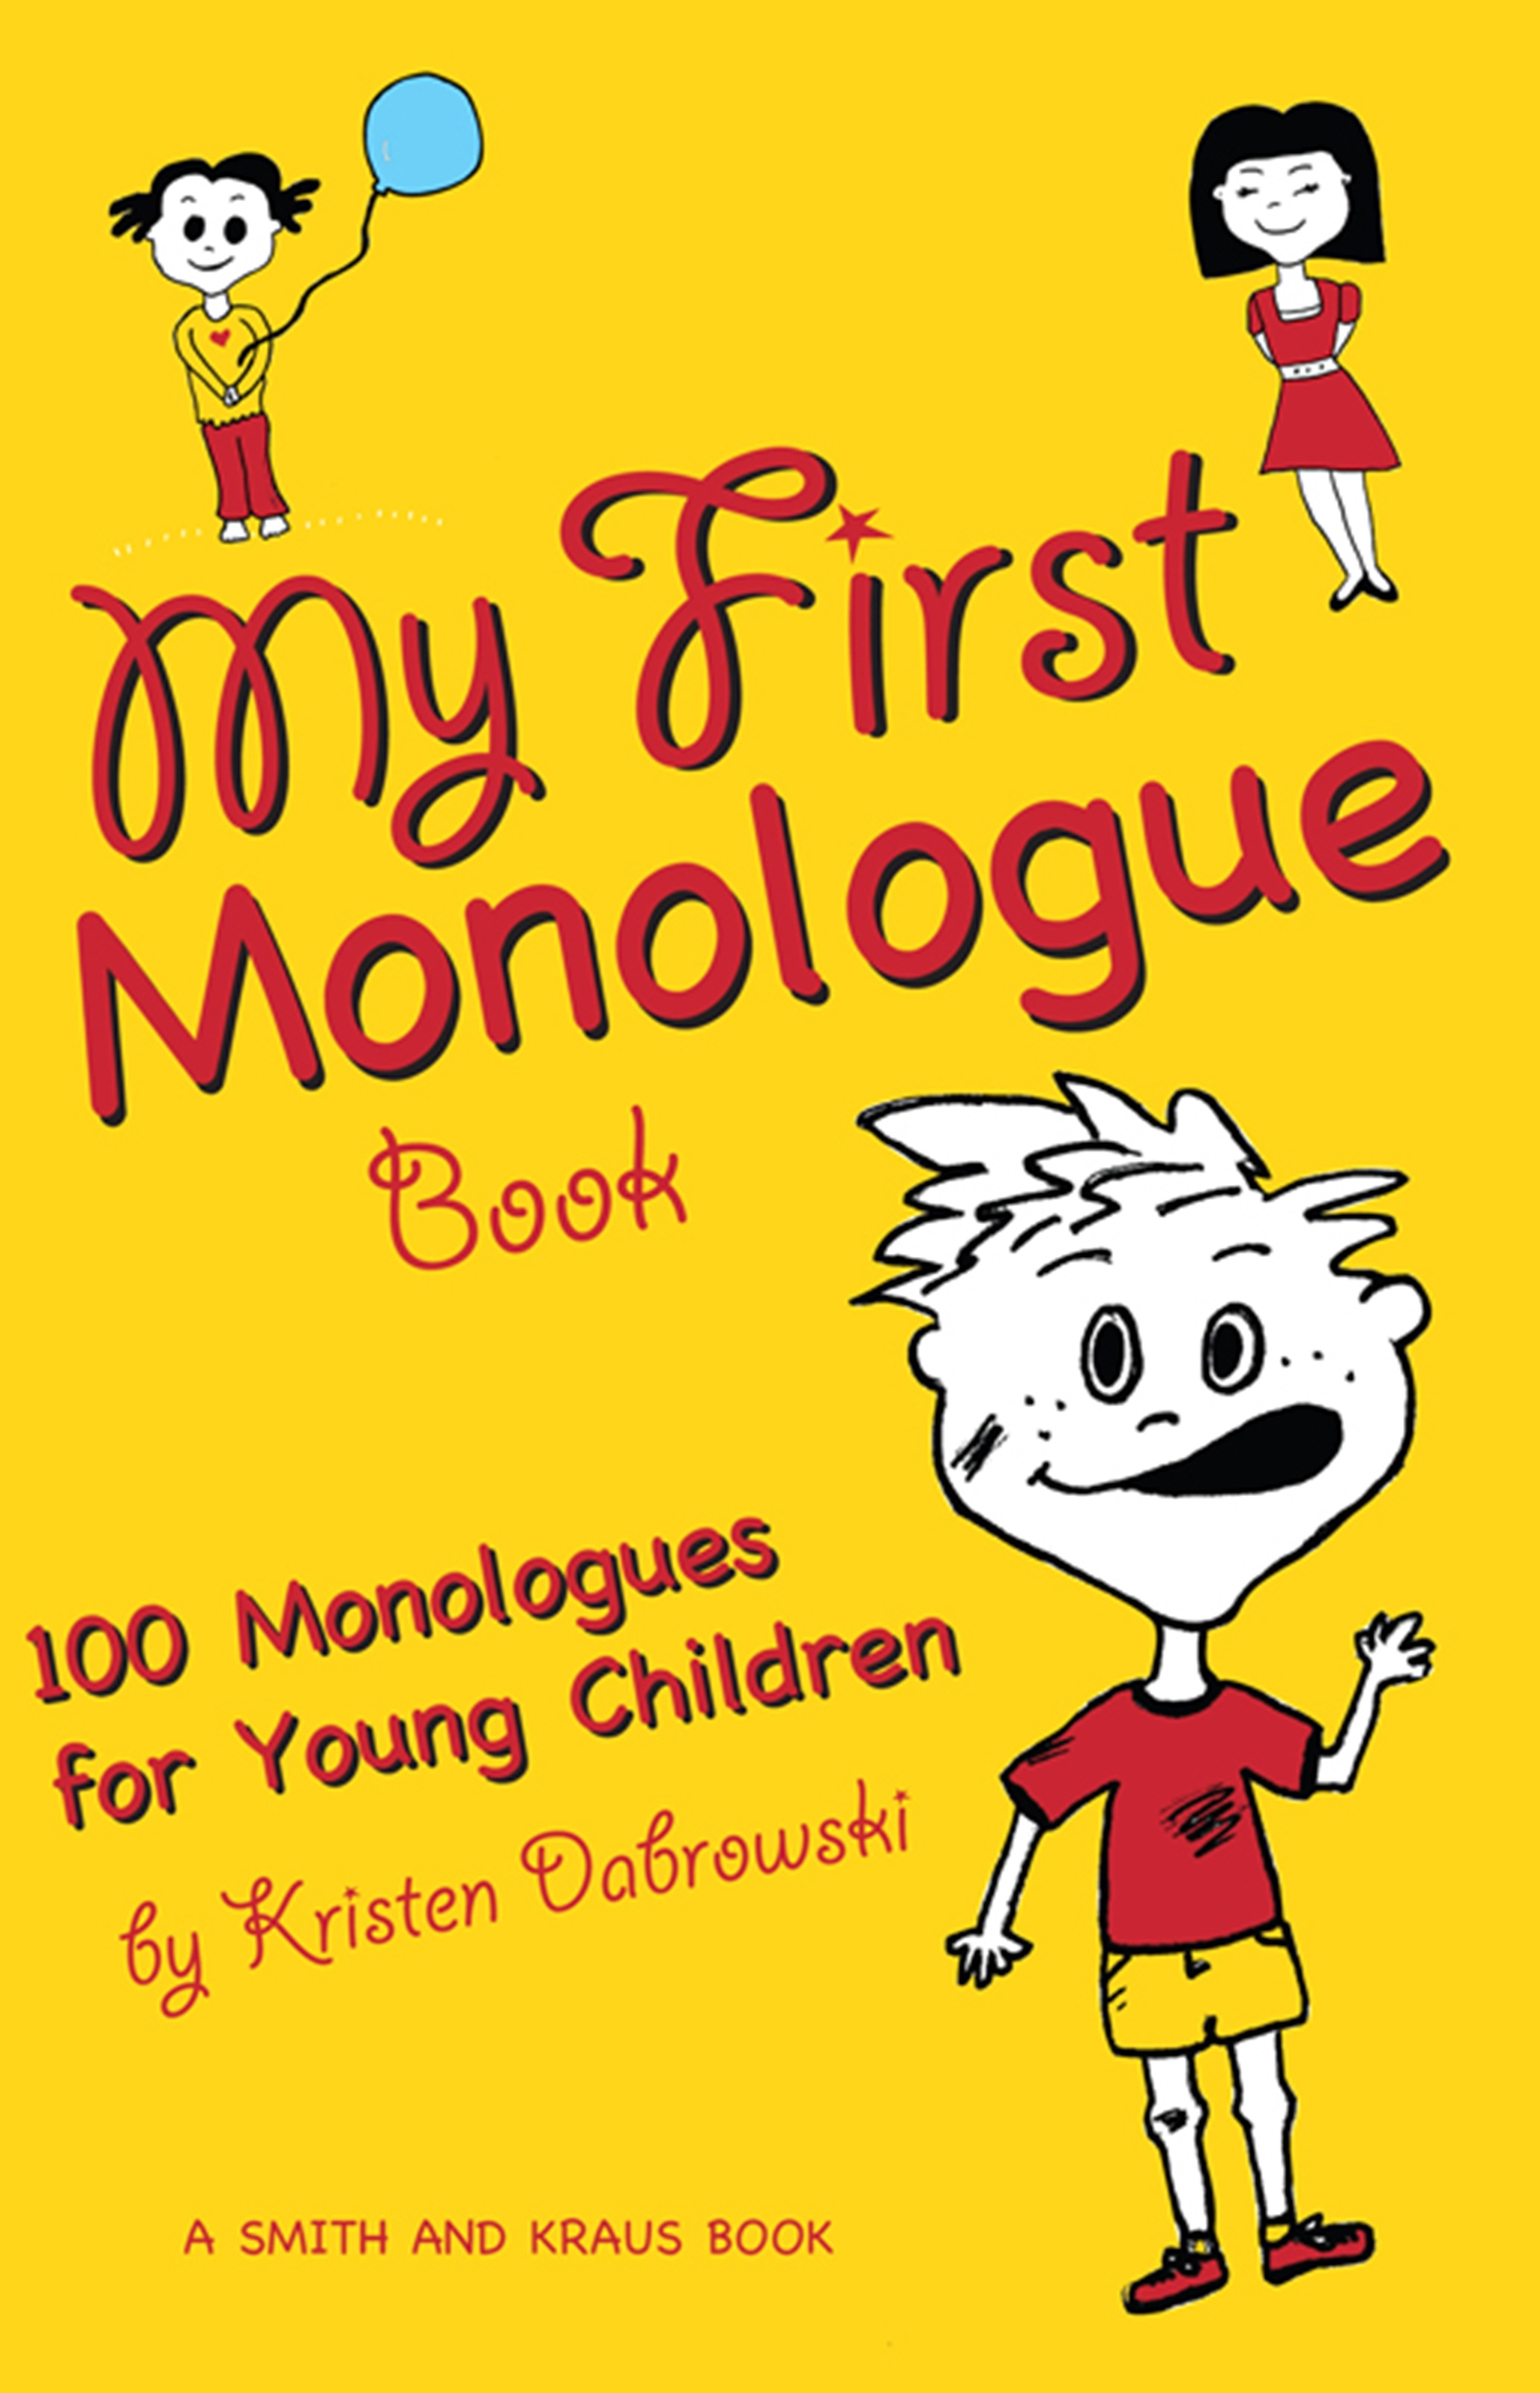 My First Monologue Book - 100 Monologues for Young Children, an Ebook by  Kristen Dabrowski